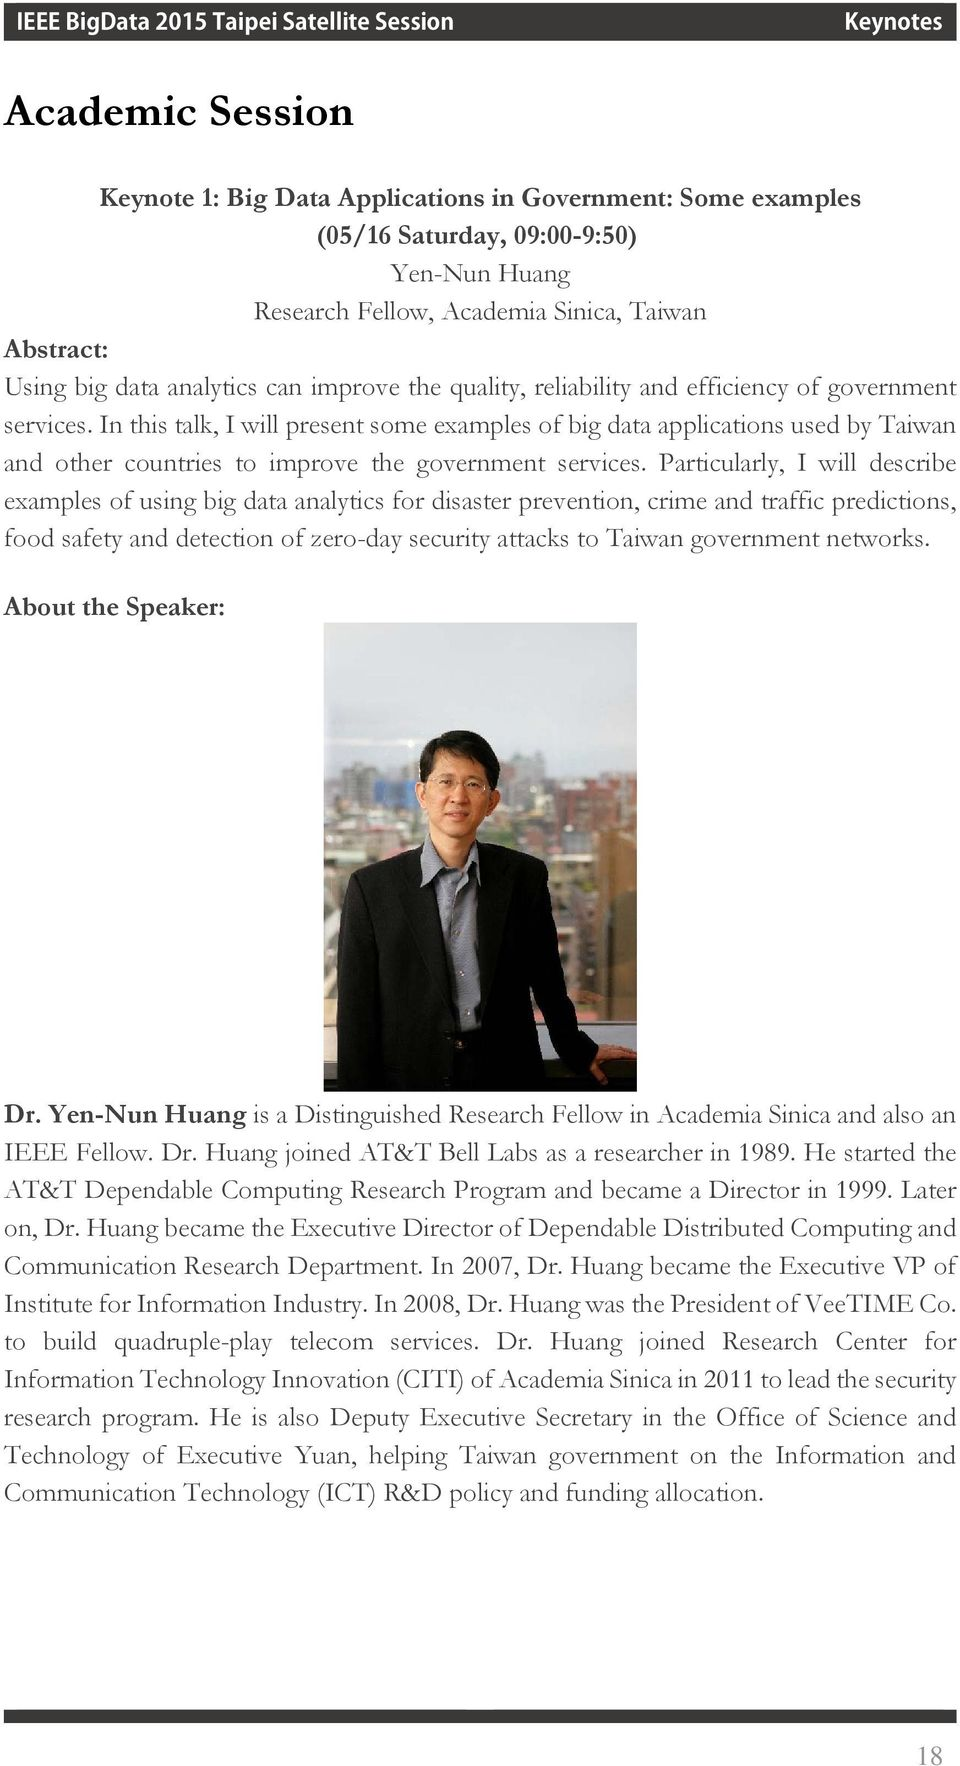 In this talk, I will present some examples of big data applications used by Taiwan and other countries to improve the government services.